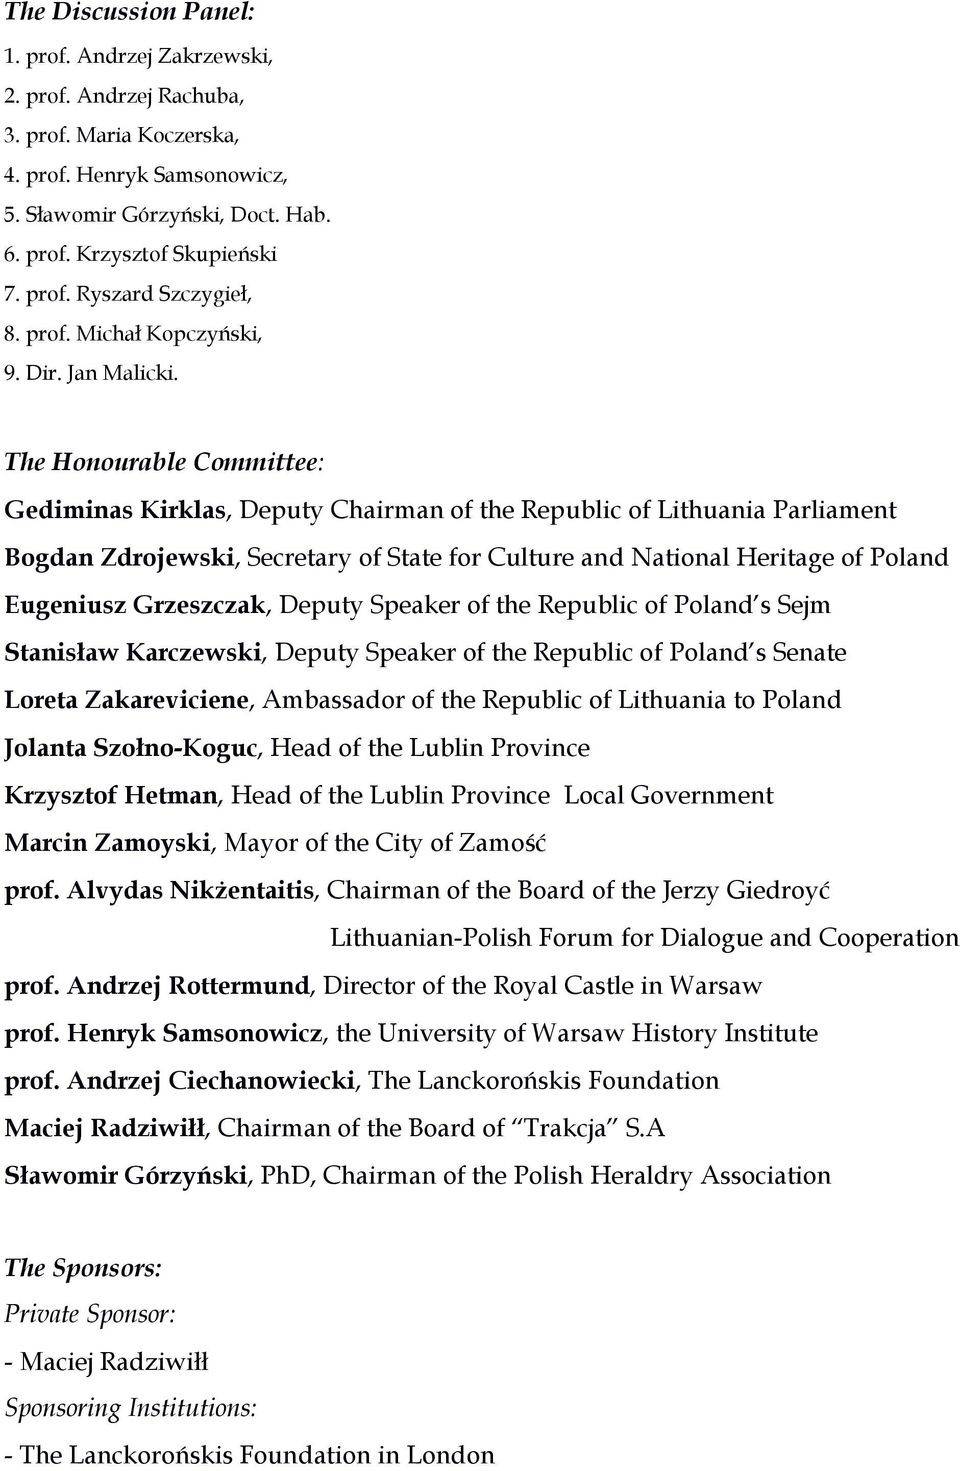 The Honourable Committee: Gediminas Kirklas, Deputy Chairman of the Republic of Lithuania Parliament Bogdan Zdrojewski, Secretary of State for Culture and National Heritage of Poland Eugeniusz